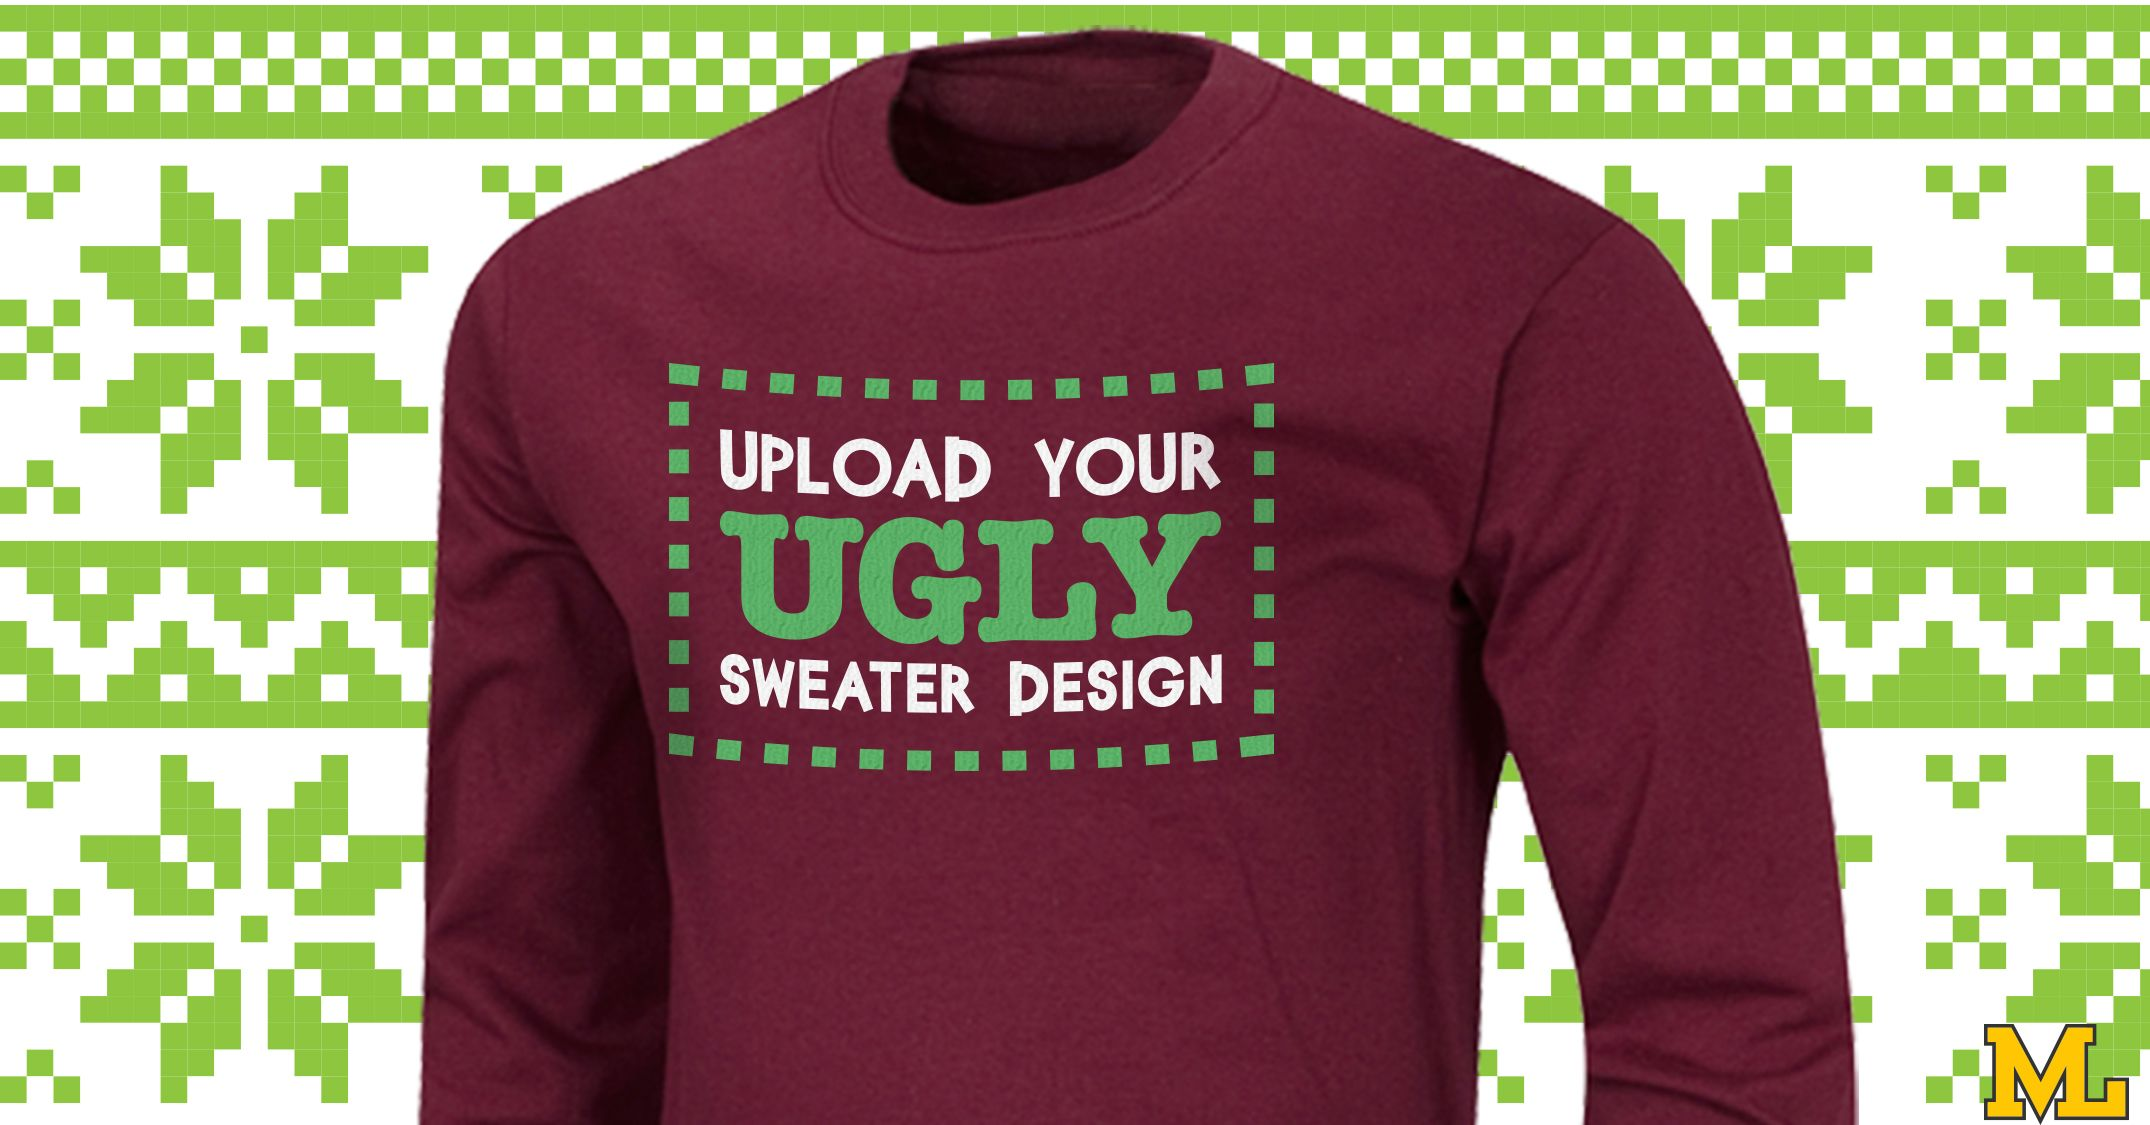 Design t shirt upload picture - Design Your Own Custom Gear At Mylocker T Shirts Hoodies Jerseys And More Add Your Own Text And Colors No Minimums Bulk Pricing Great Gifts